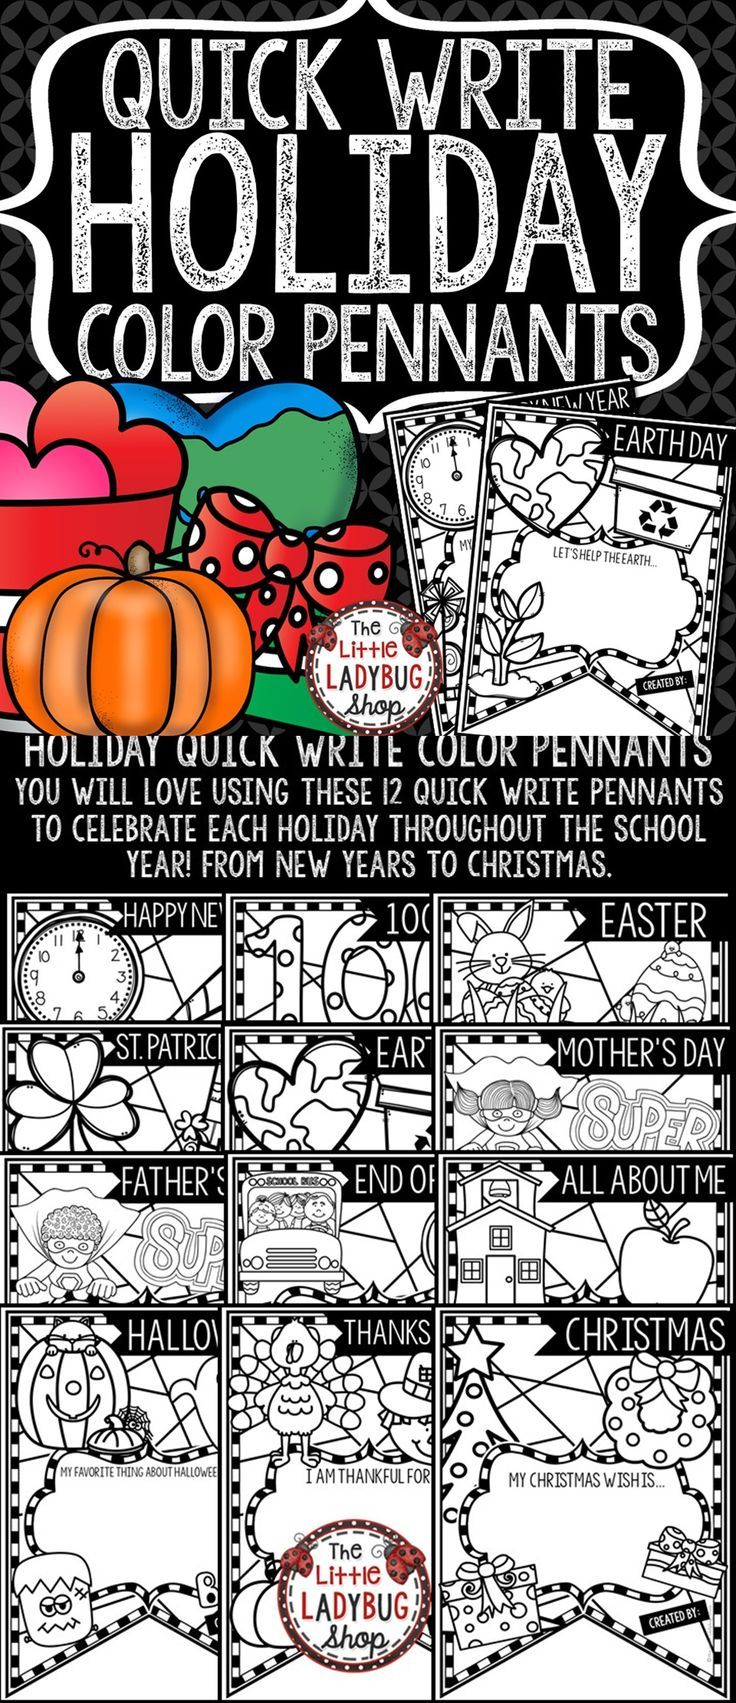 You will Love these Quick Write Abstract Color Pennants! You will Love using these 13 quick write pennants to celebrate each holiday throughout the school year! From New Years to Christmas. Holiday Writing Activities.